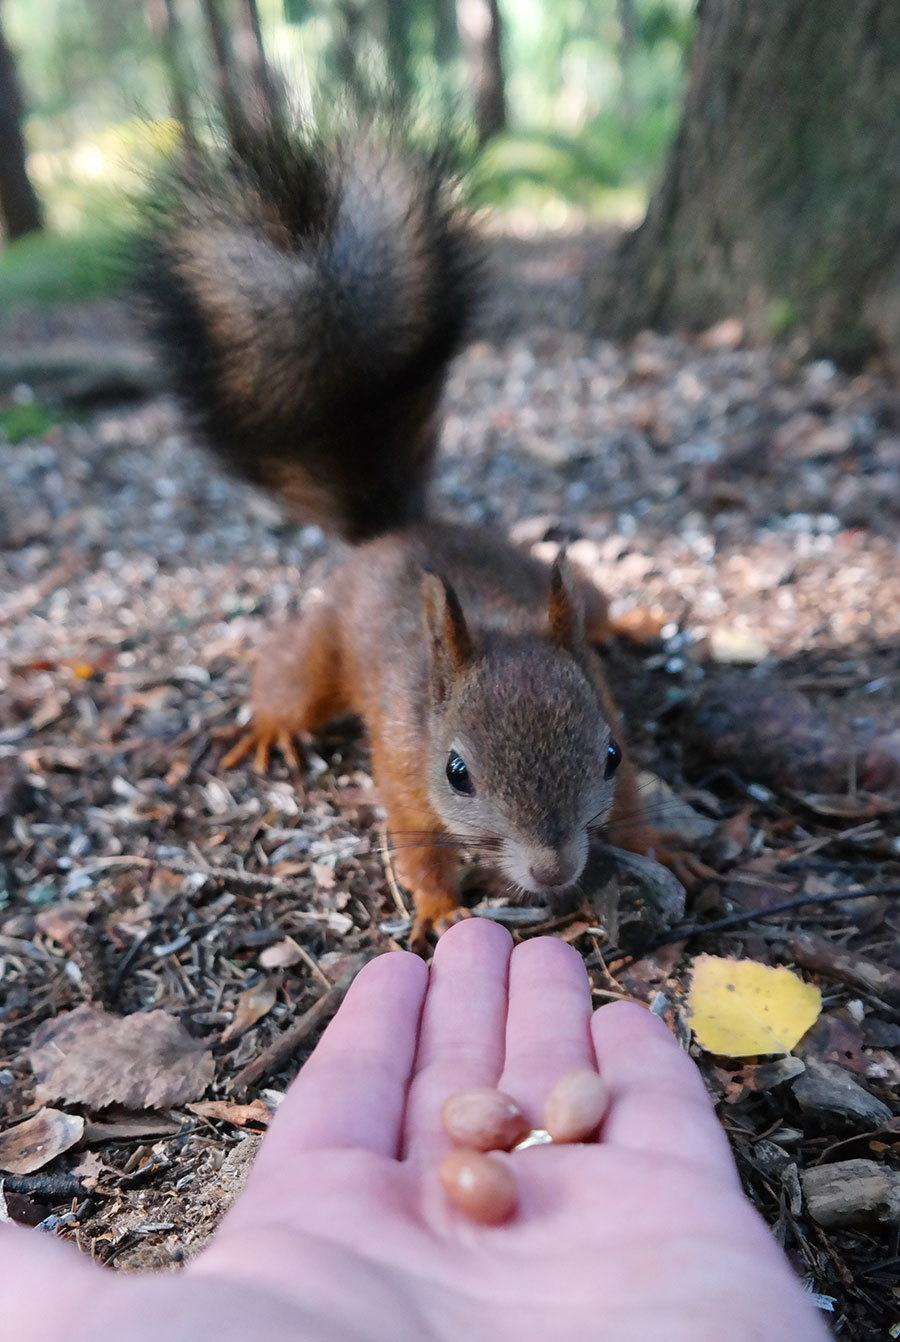 Yes, it's true, even I was able to feed the squirrels!